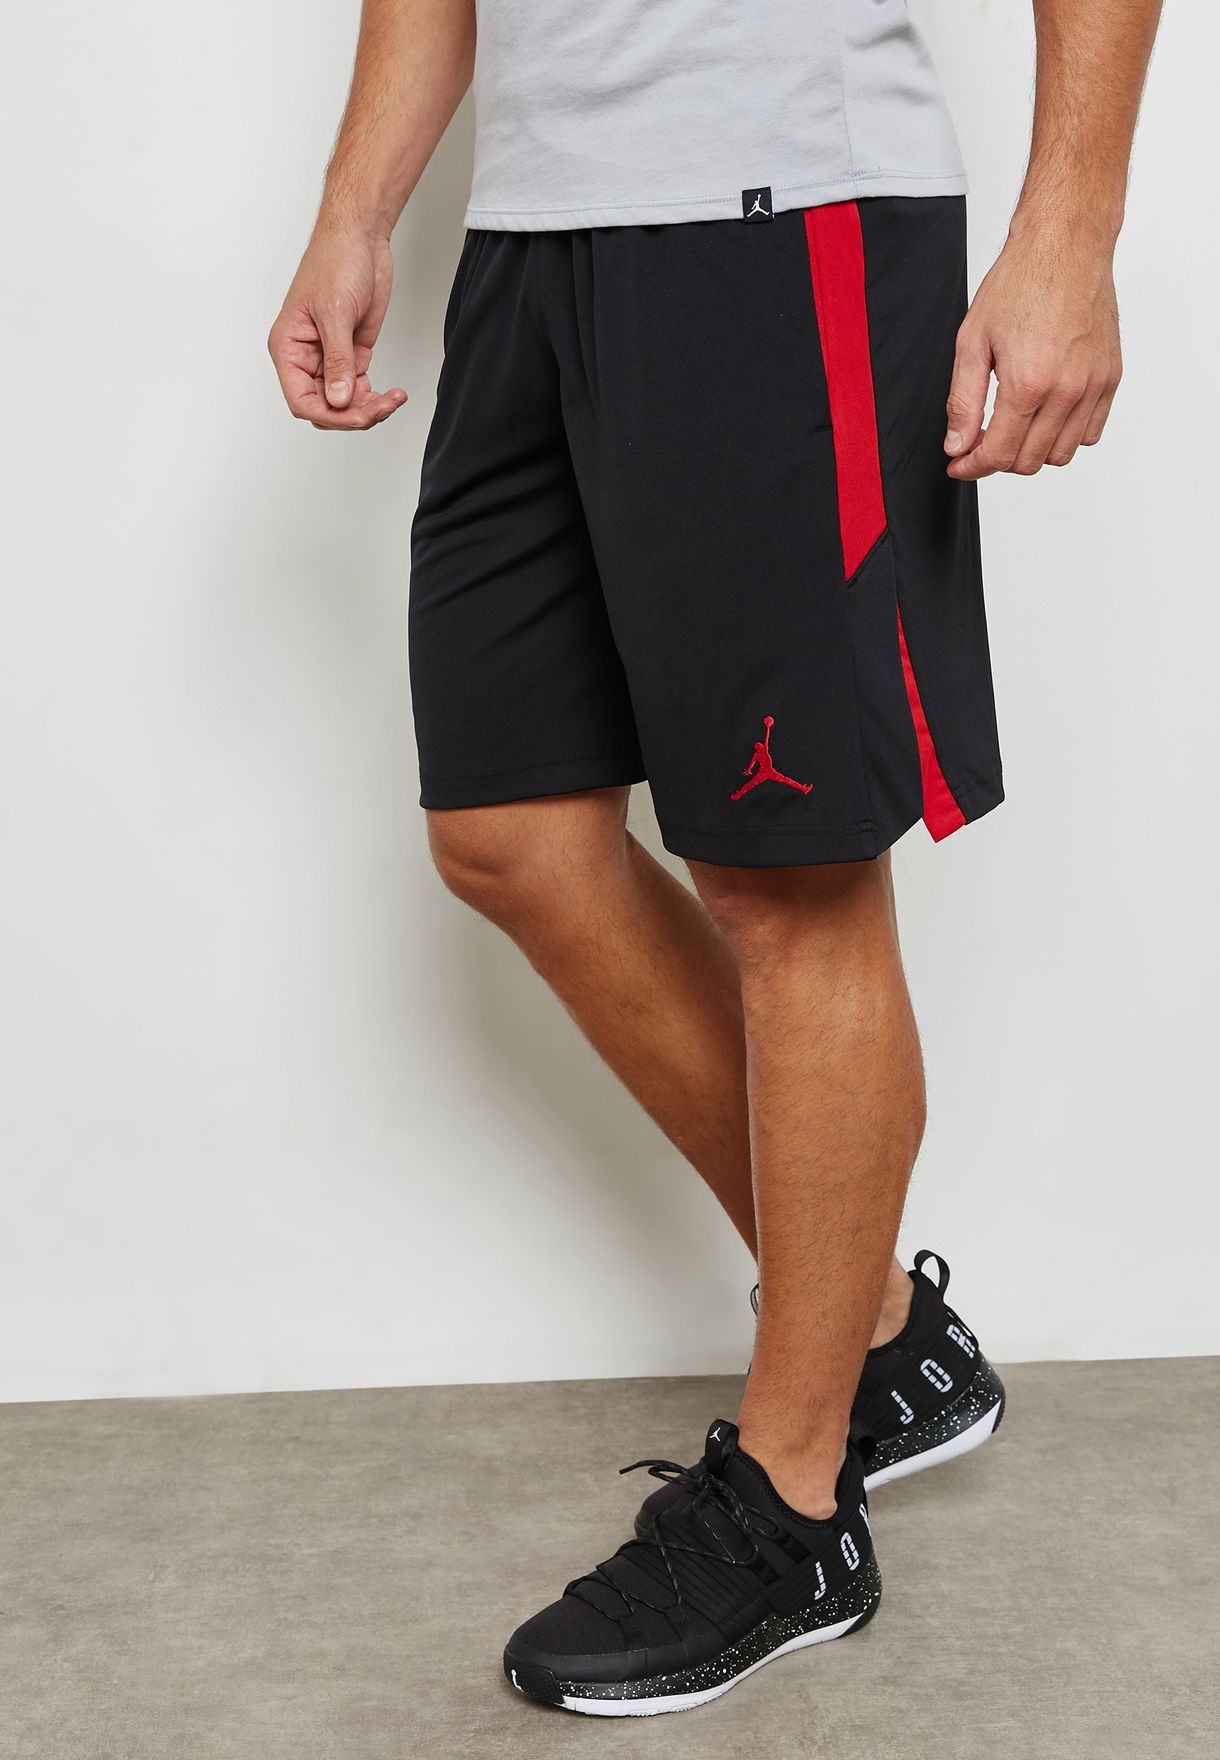 ae816538e309 Shop Nike black Jordan Dri-FIT 23 Alpha Knit Shorts 905782-010 for ...